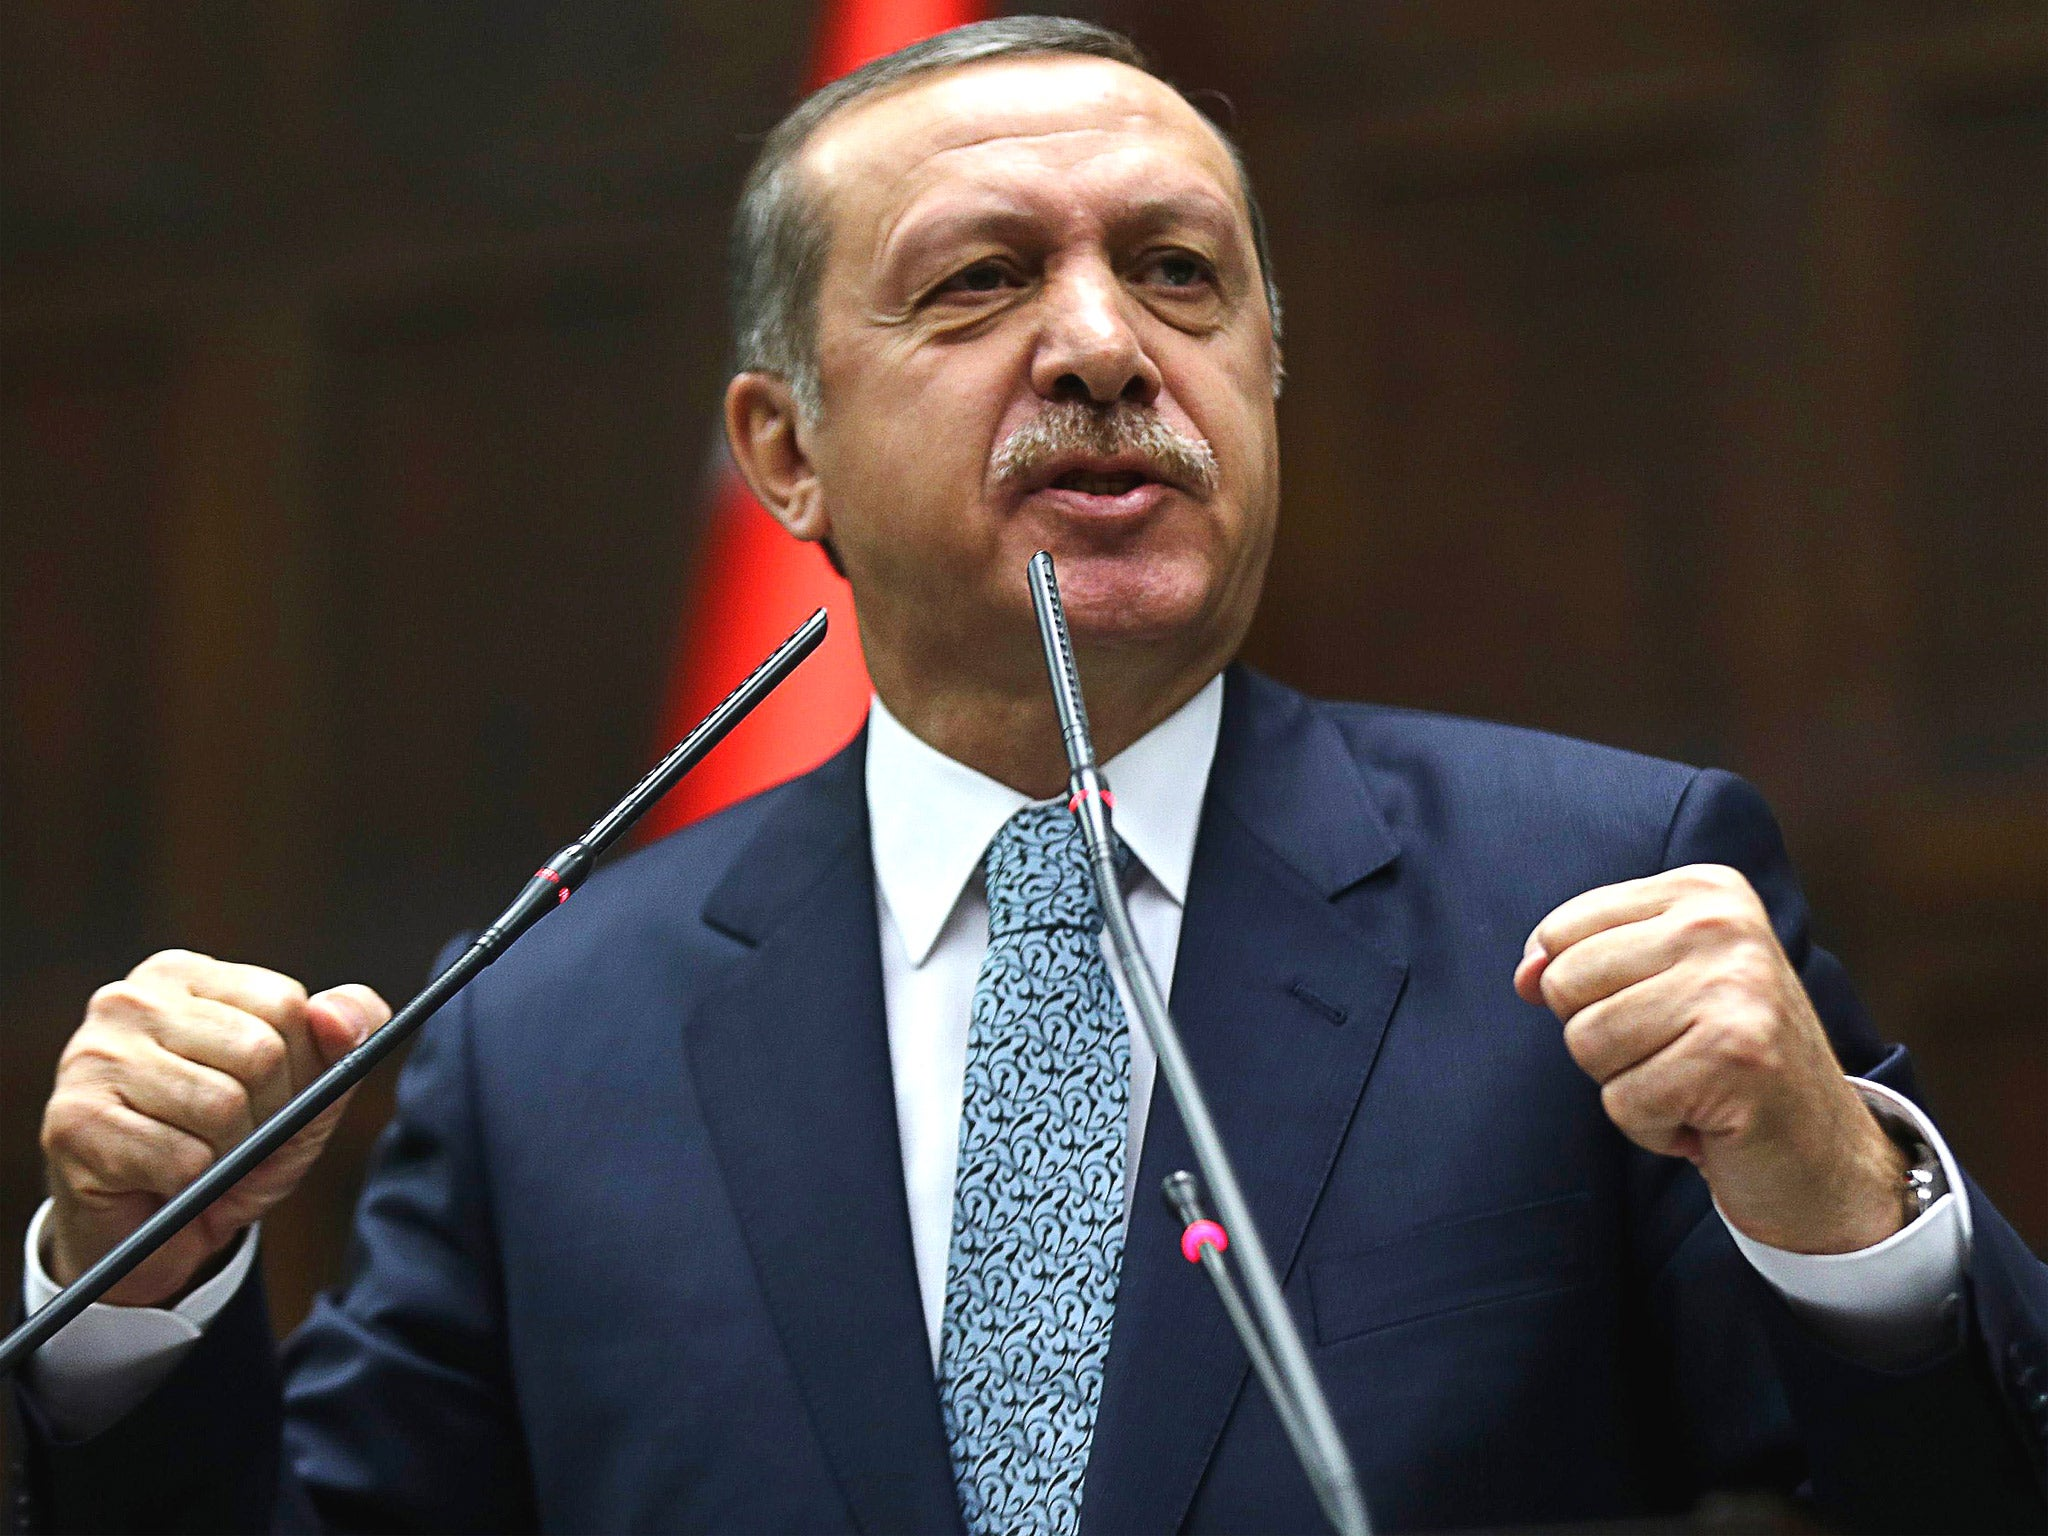 Turkish PM, Recep Tayyip Erdogan, claims incriminating audio tape of him allegedly discussing ways to smuggle cash out of the country is a fake